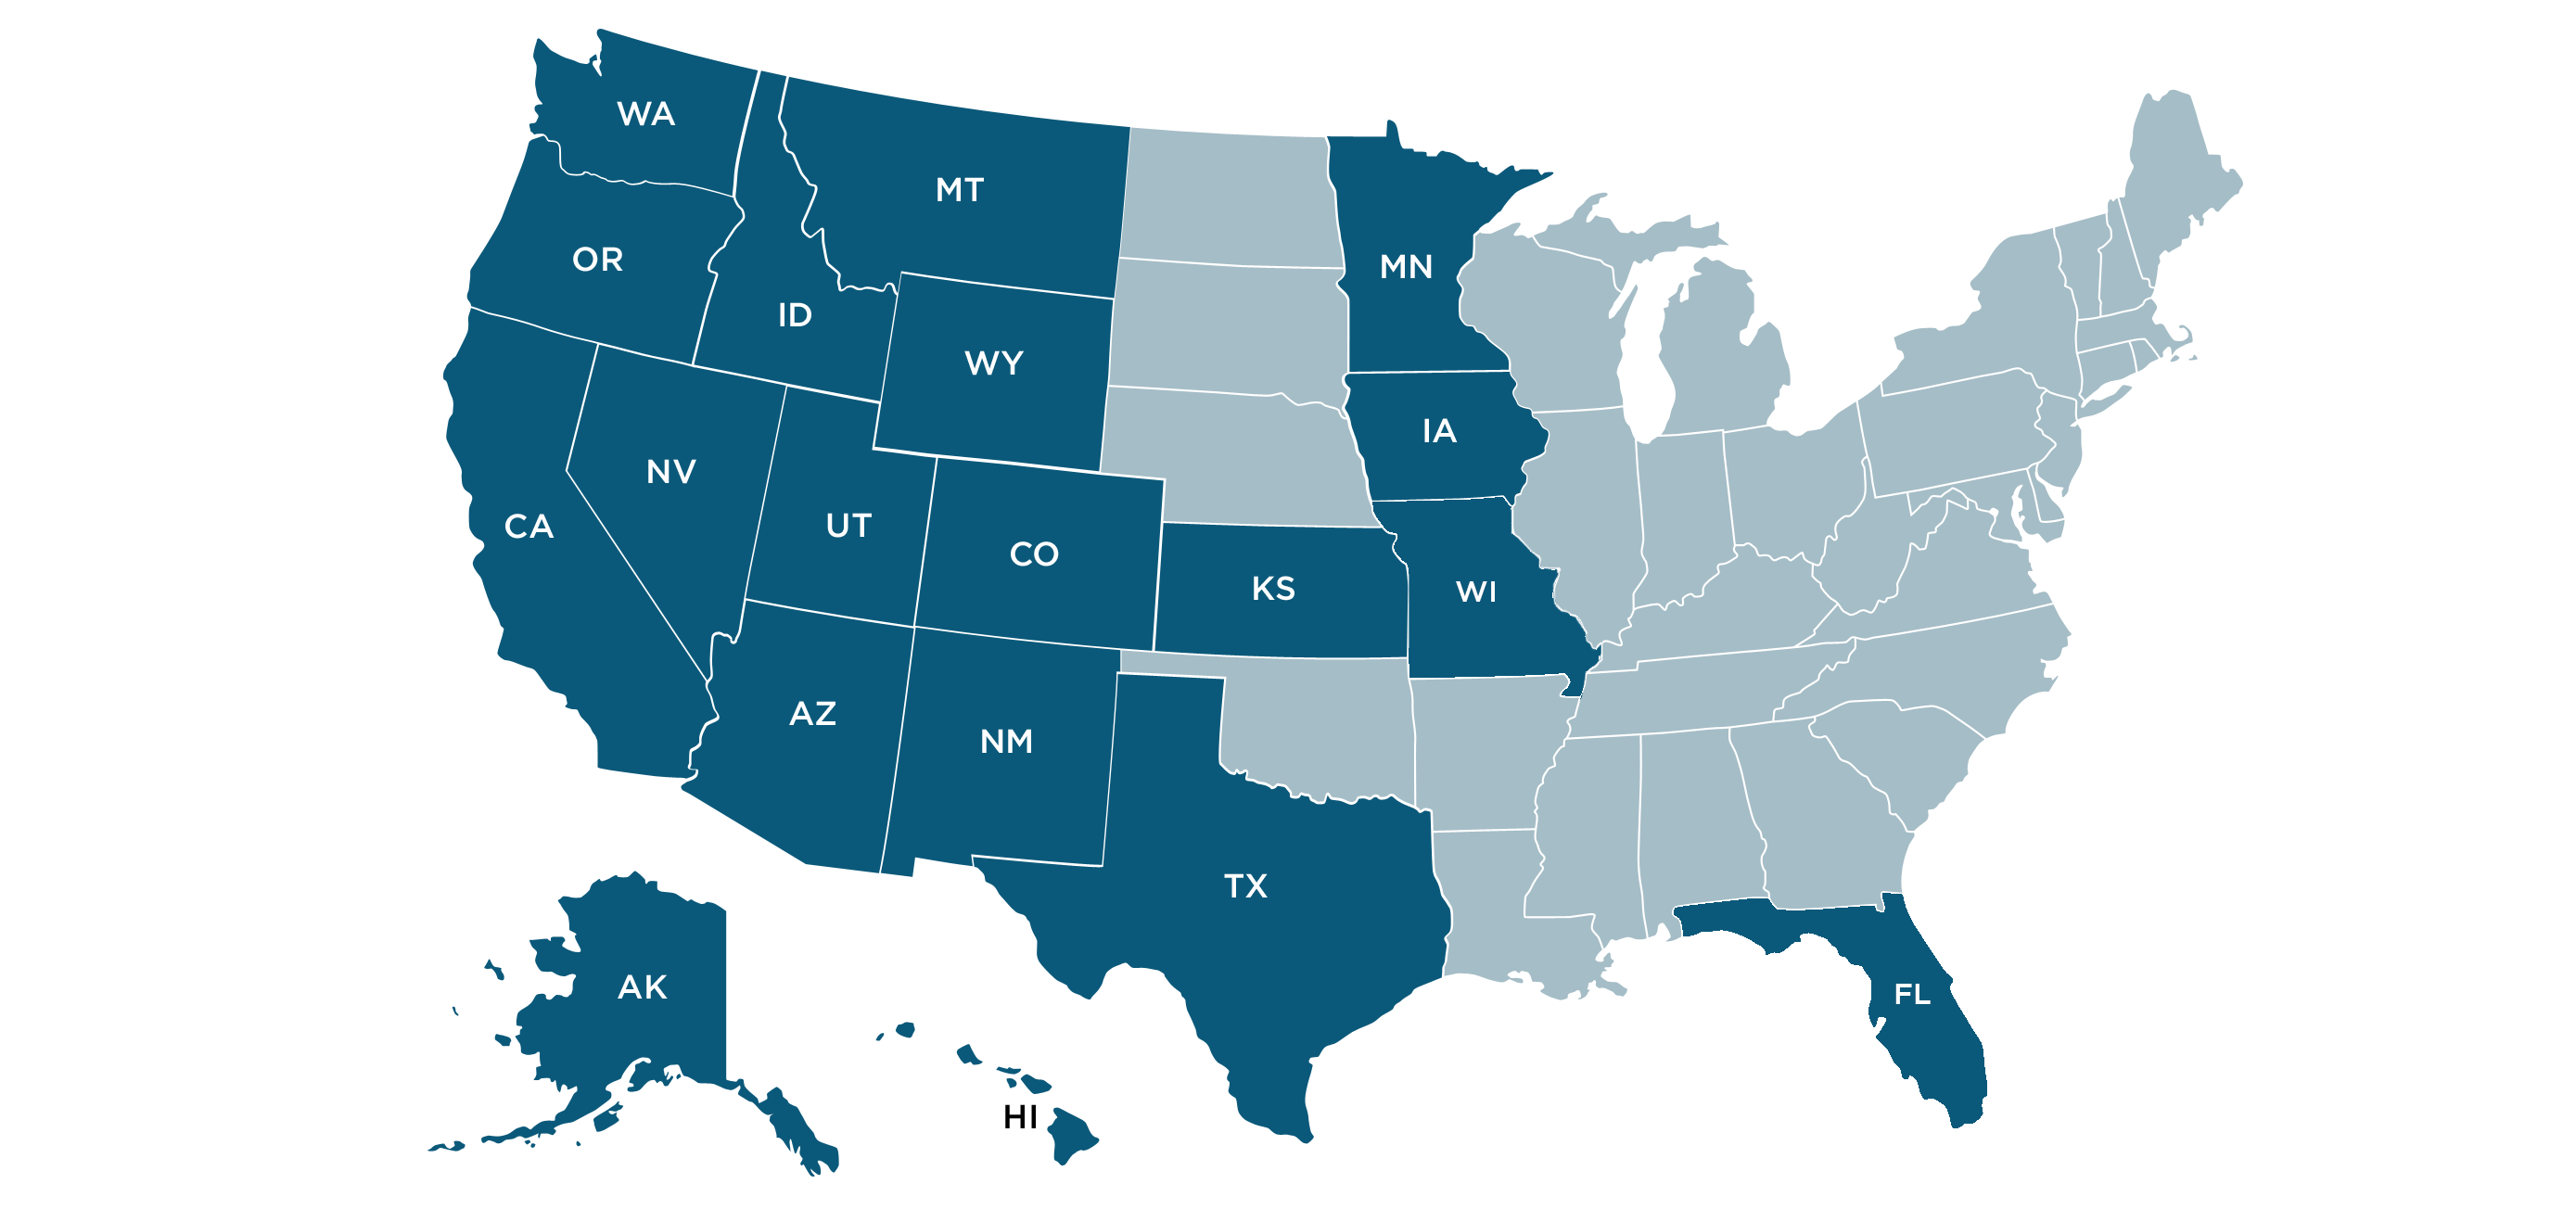 static_map_image_resized.png